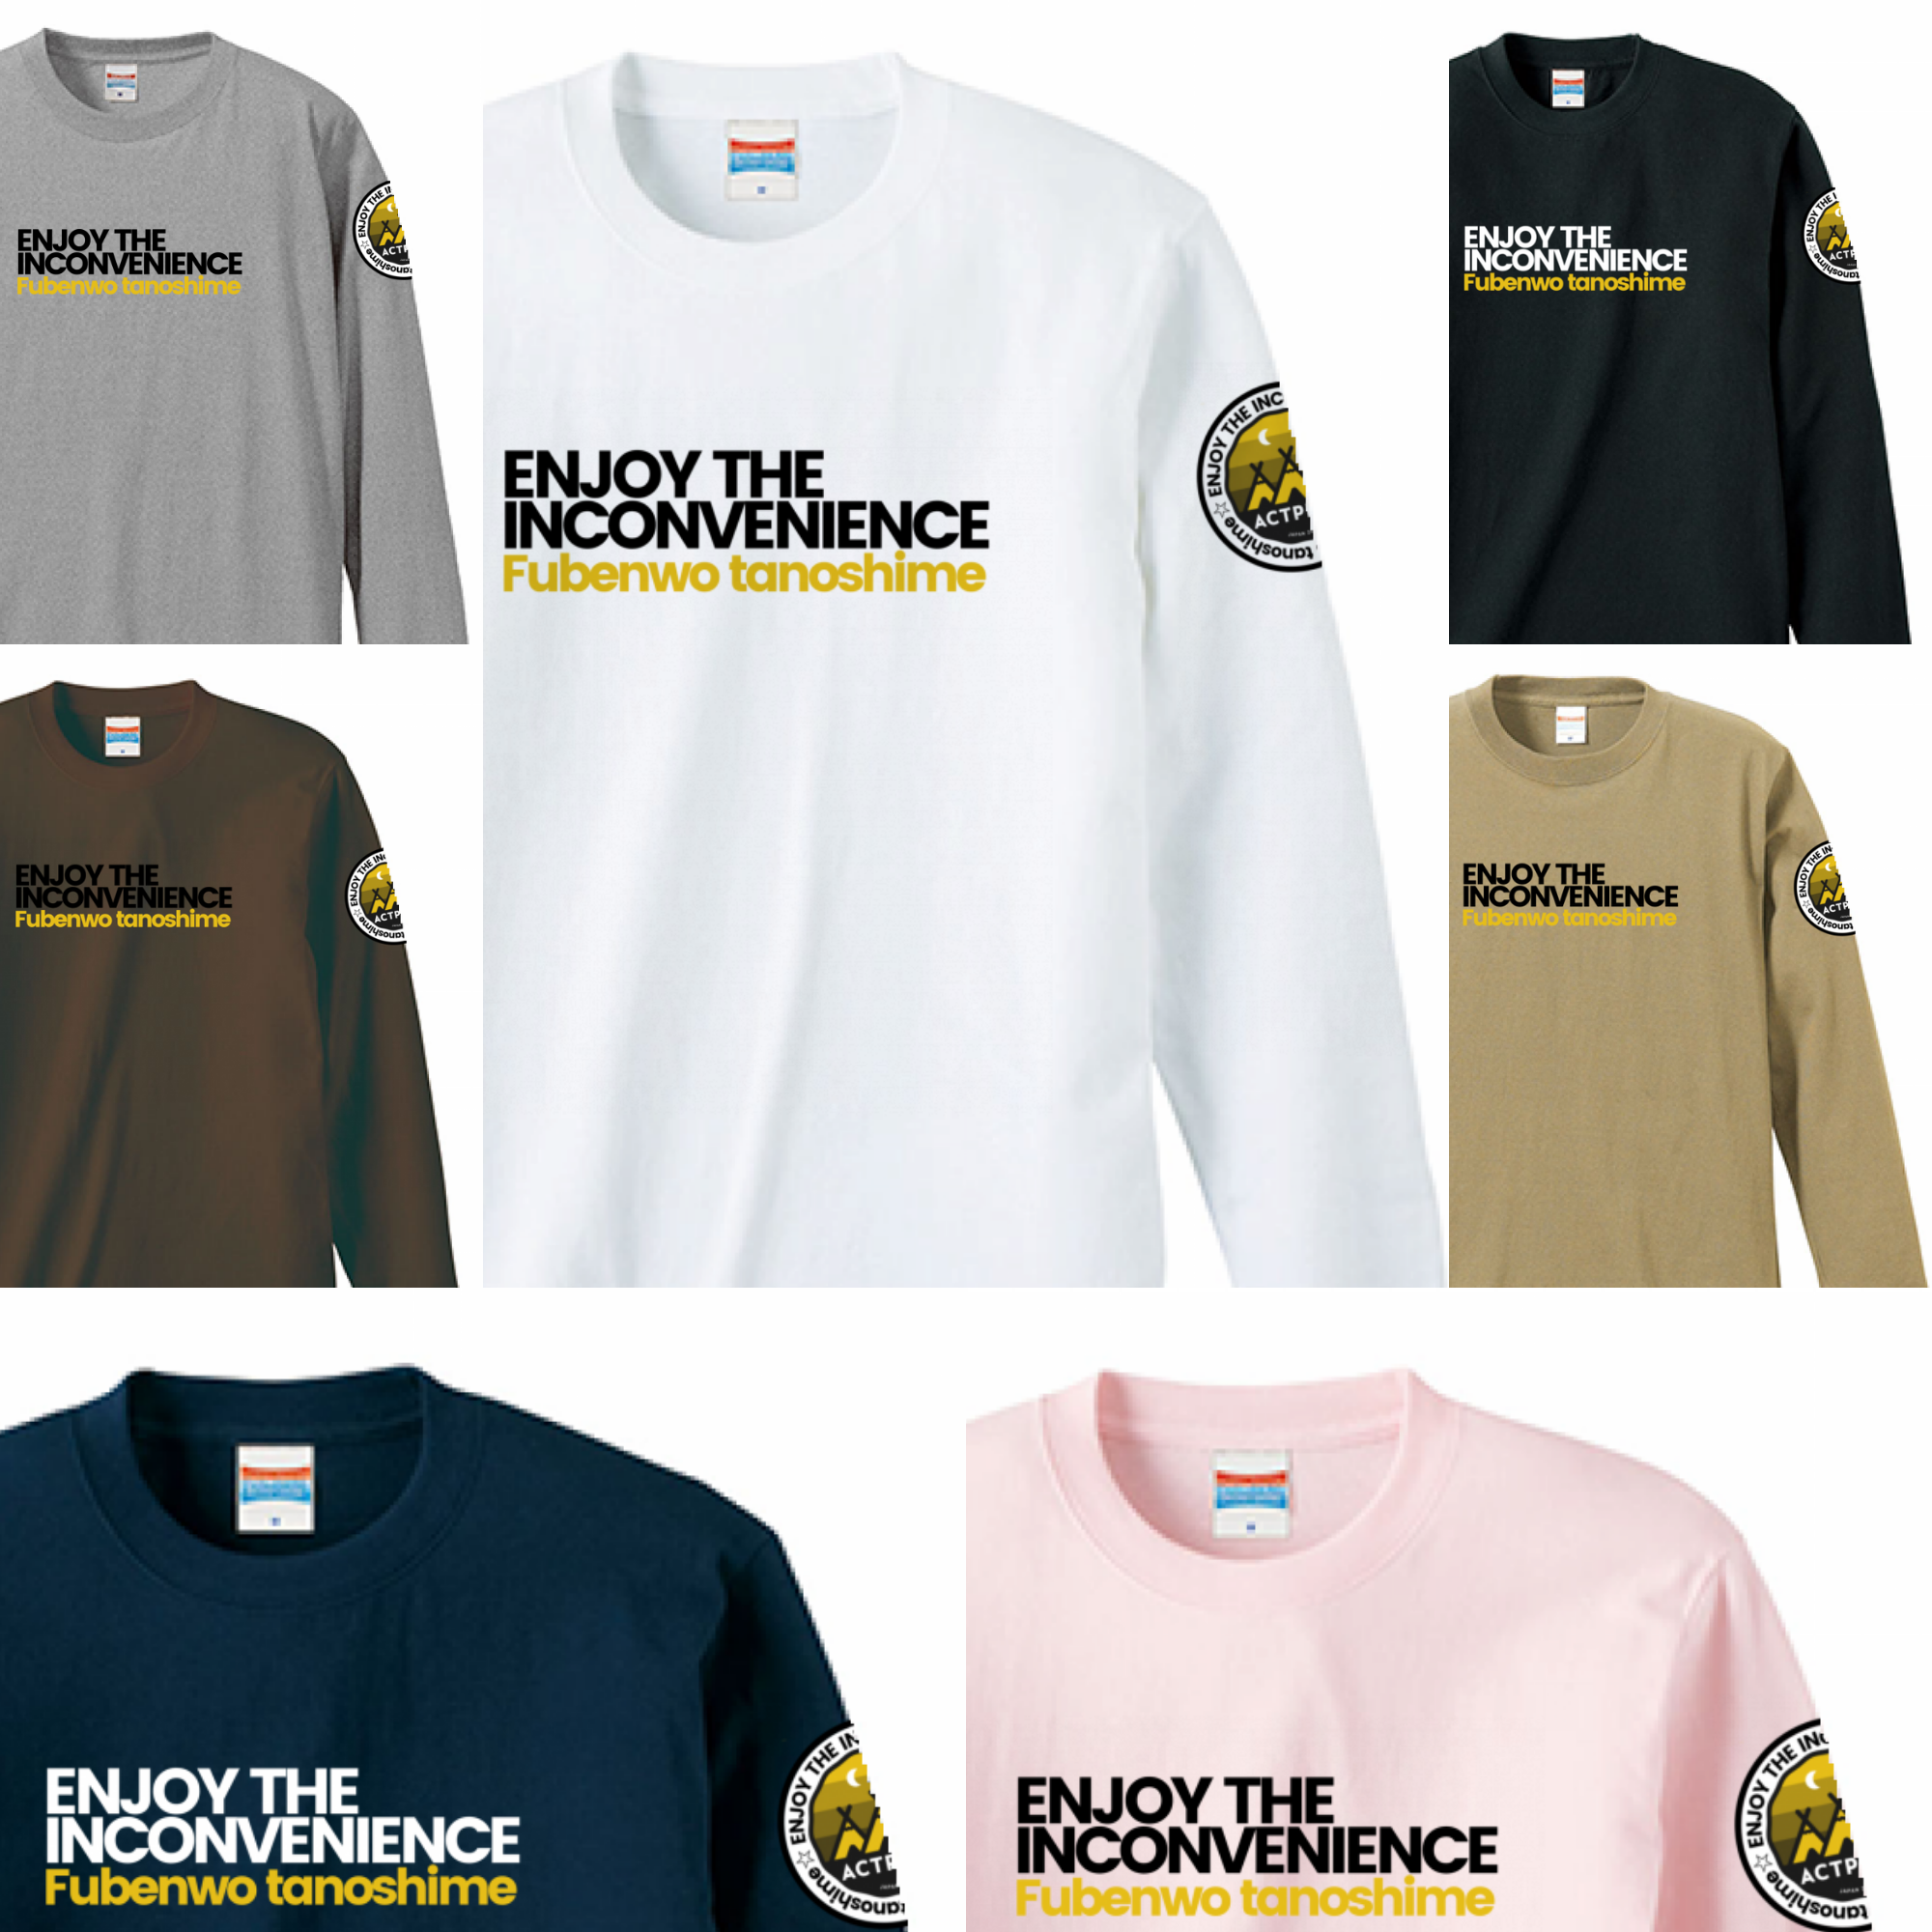 【UNISEX】ACTPROS ENJOY THE INCONVENIENCE 5.6oz ヘビーウェイト ロングスリーブTEE【7colors】ACT-202103